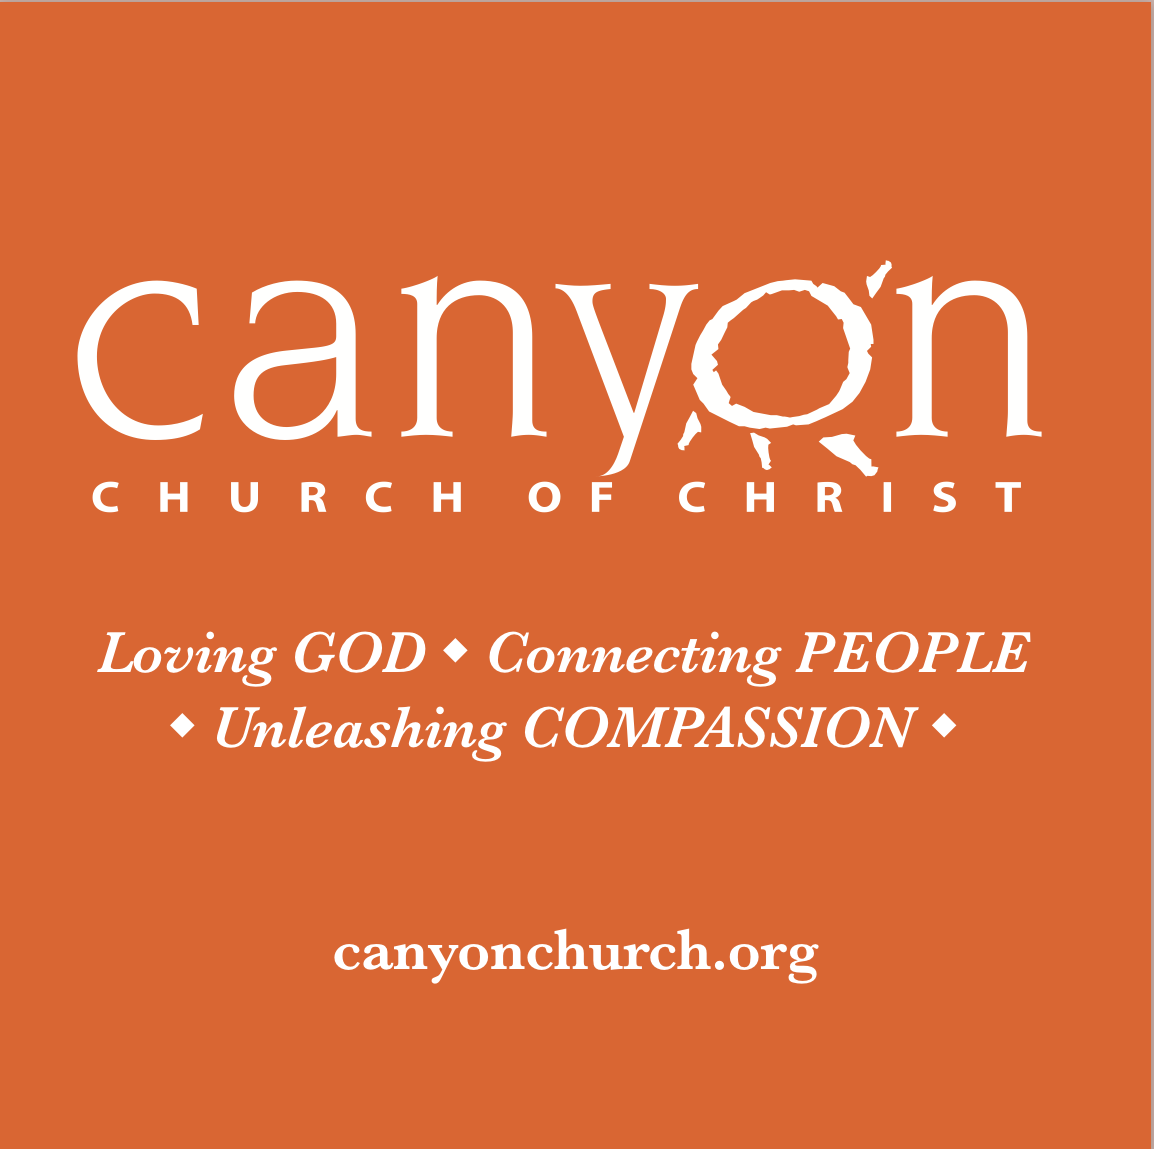 Canyon Church of Christ